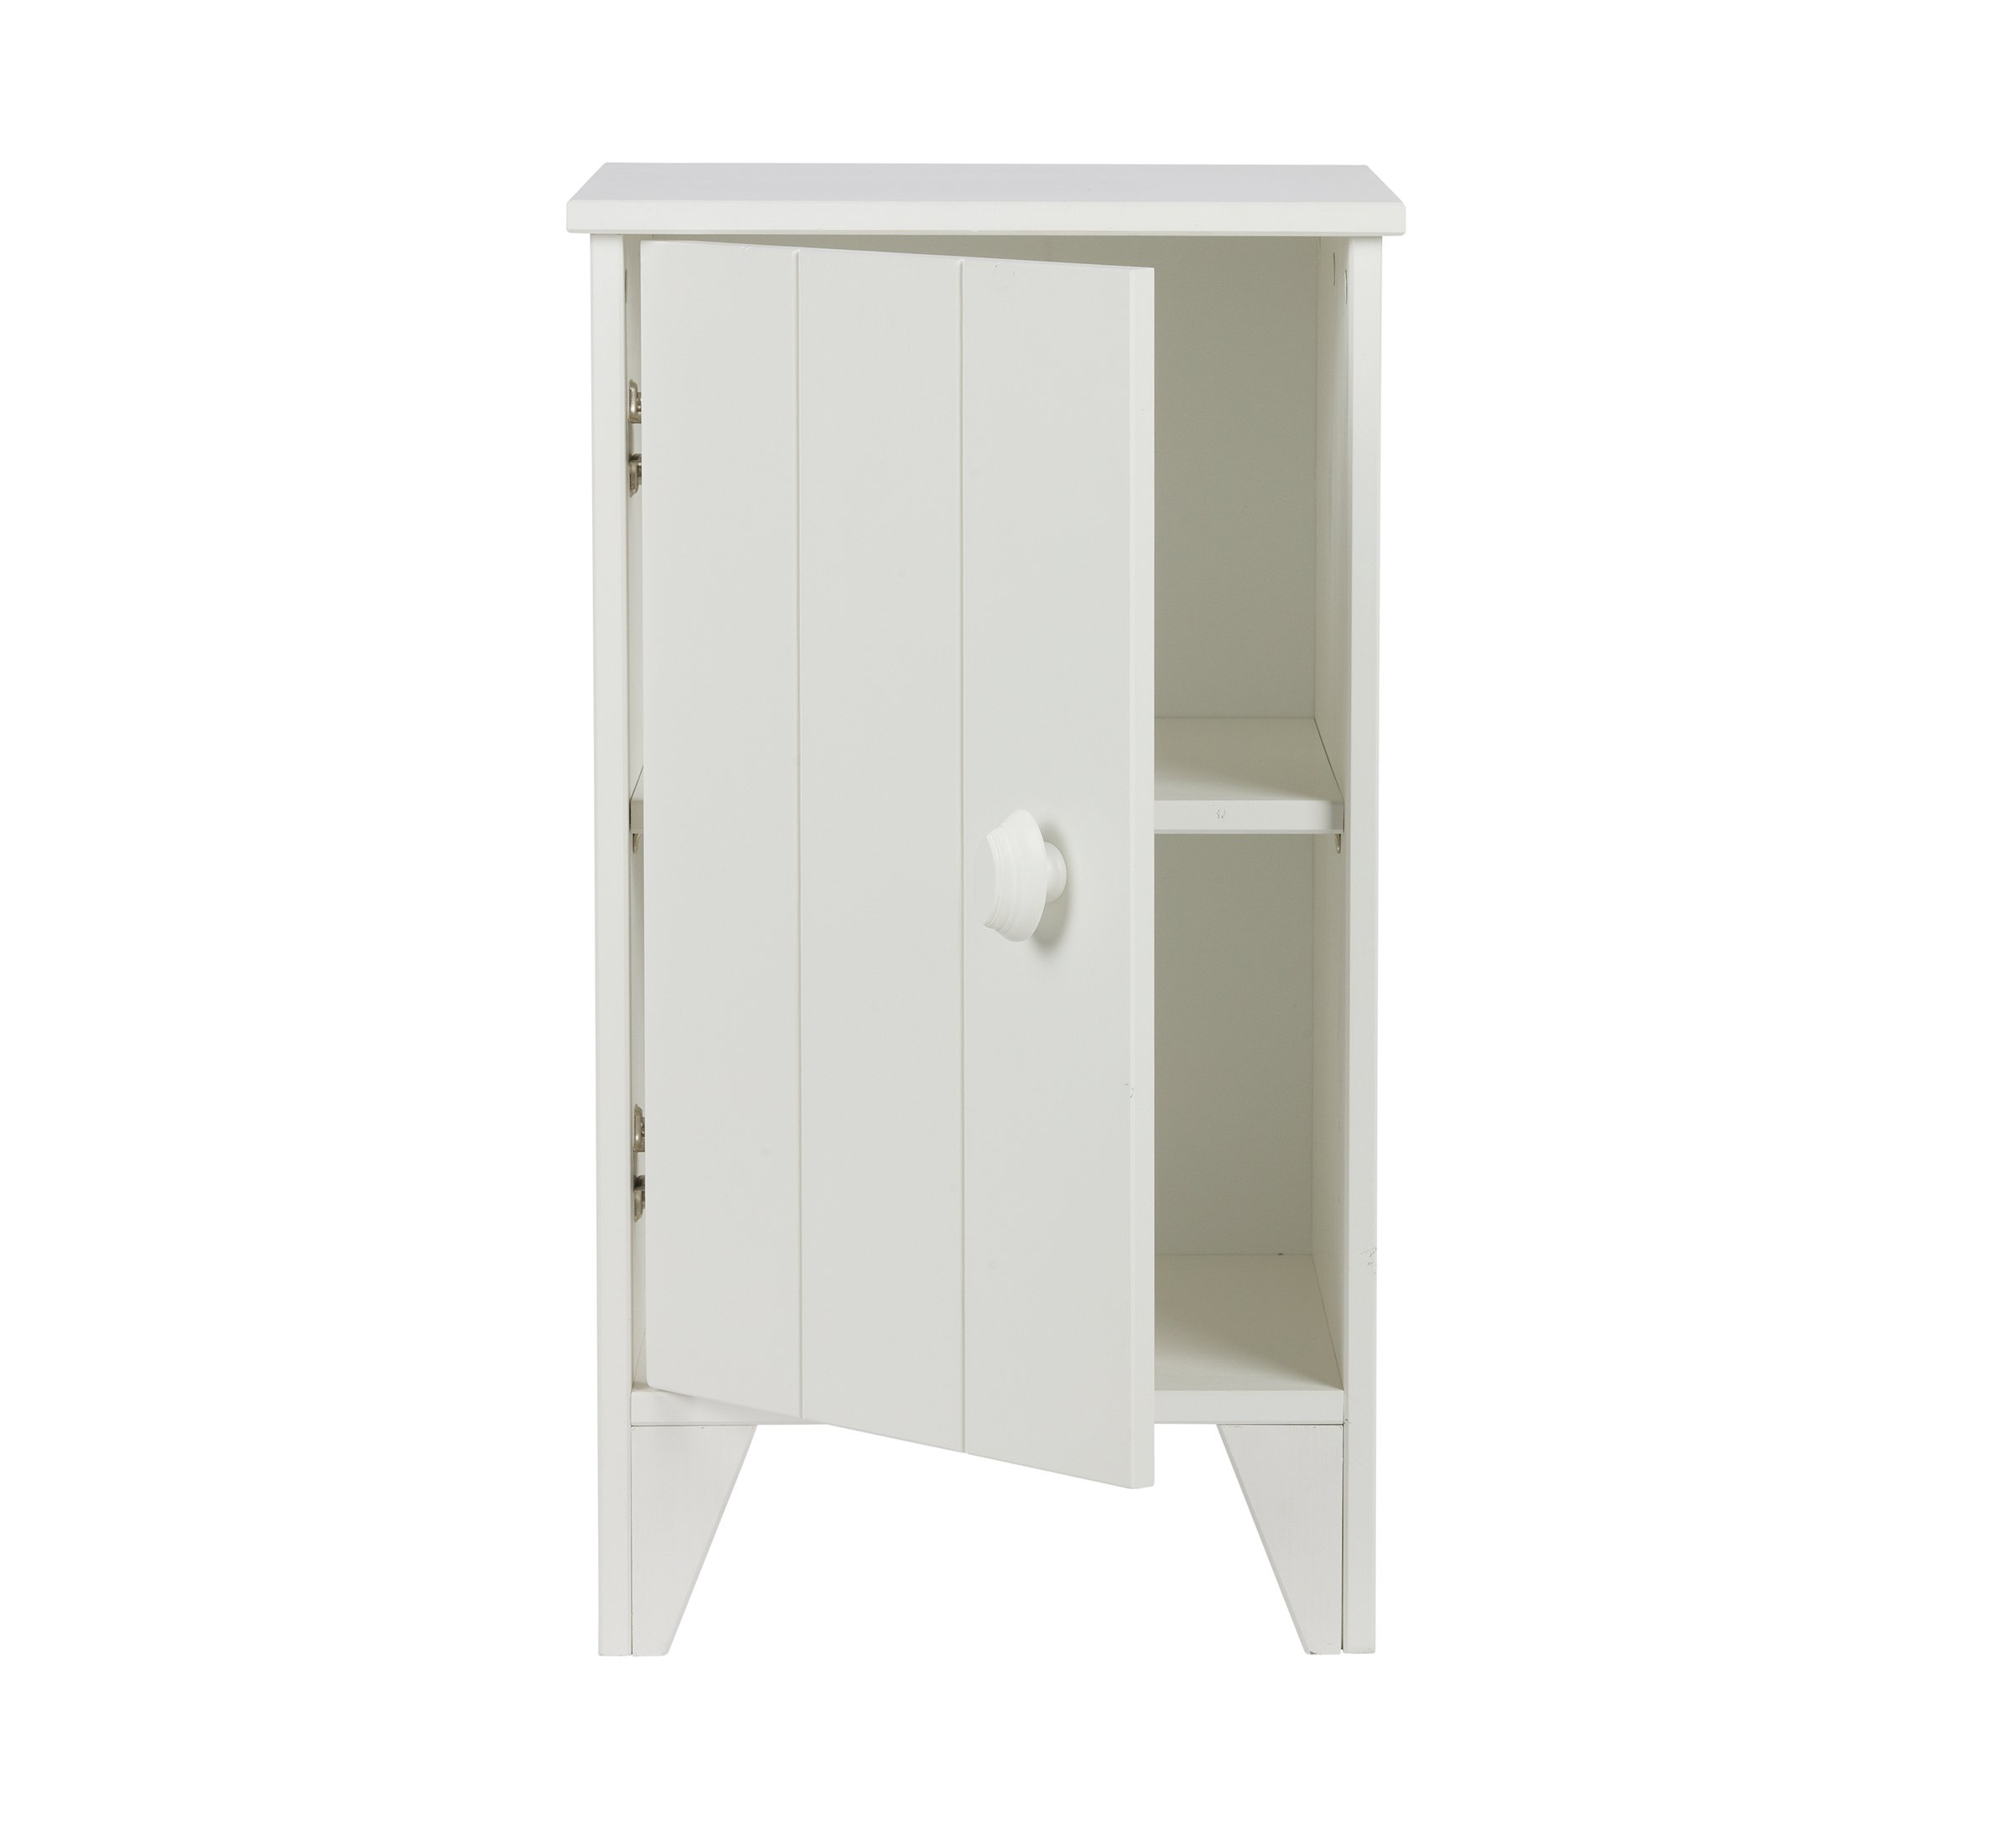 Nikki Nightstand Solid Wood White For Children In Sa